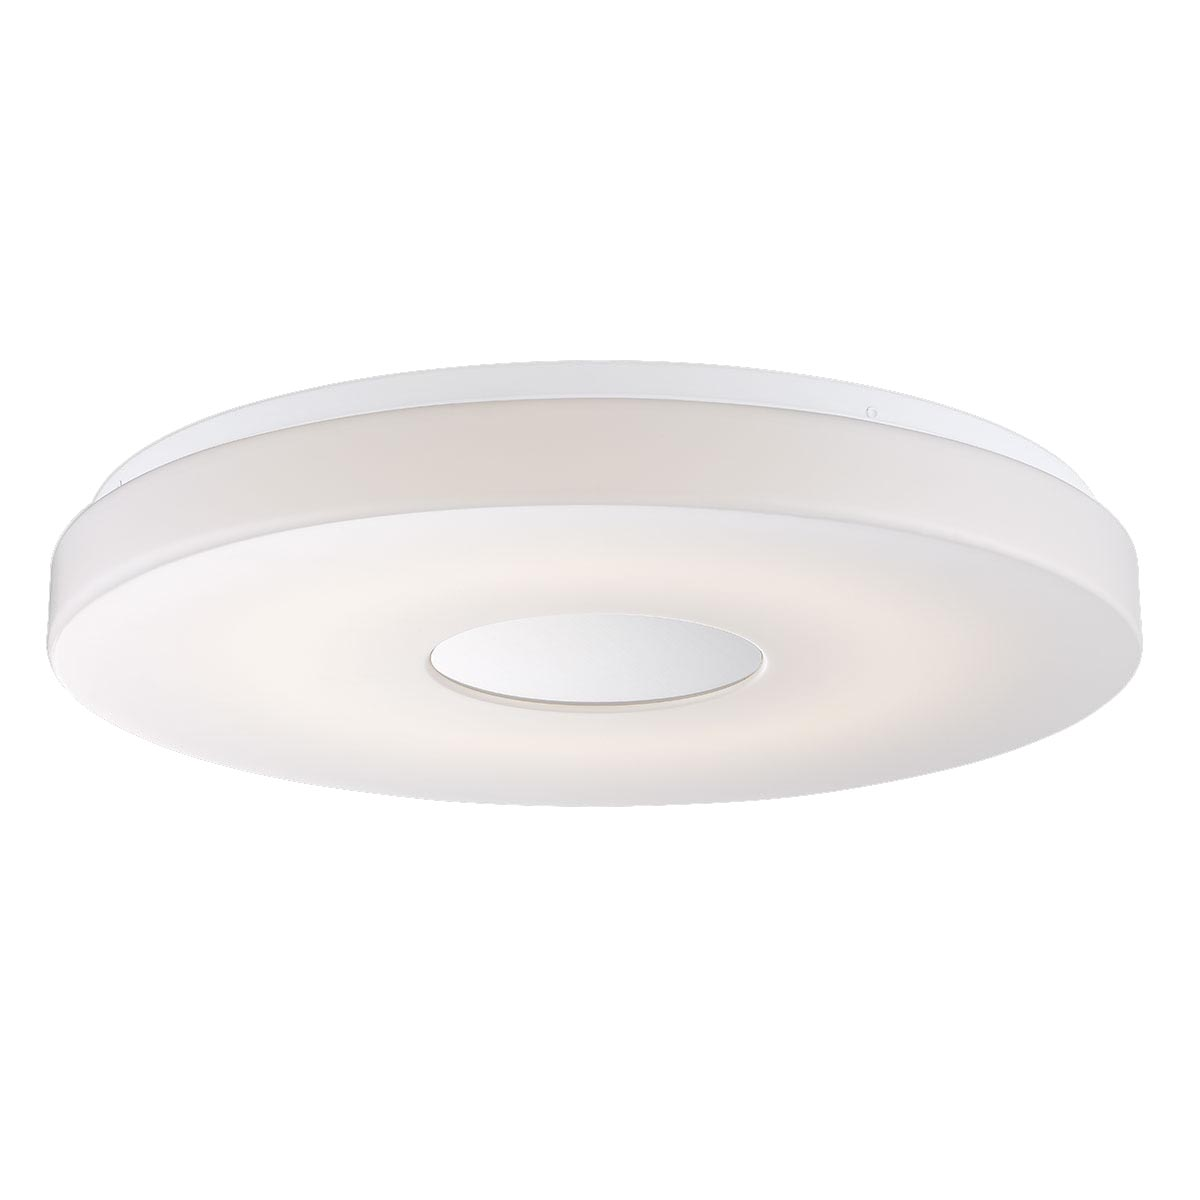 Ceiling mount lights trinidad on the building source ceiling mount lights 38 products arubaitofo Gallery